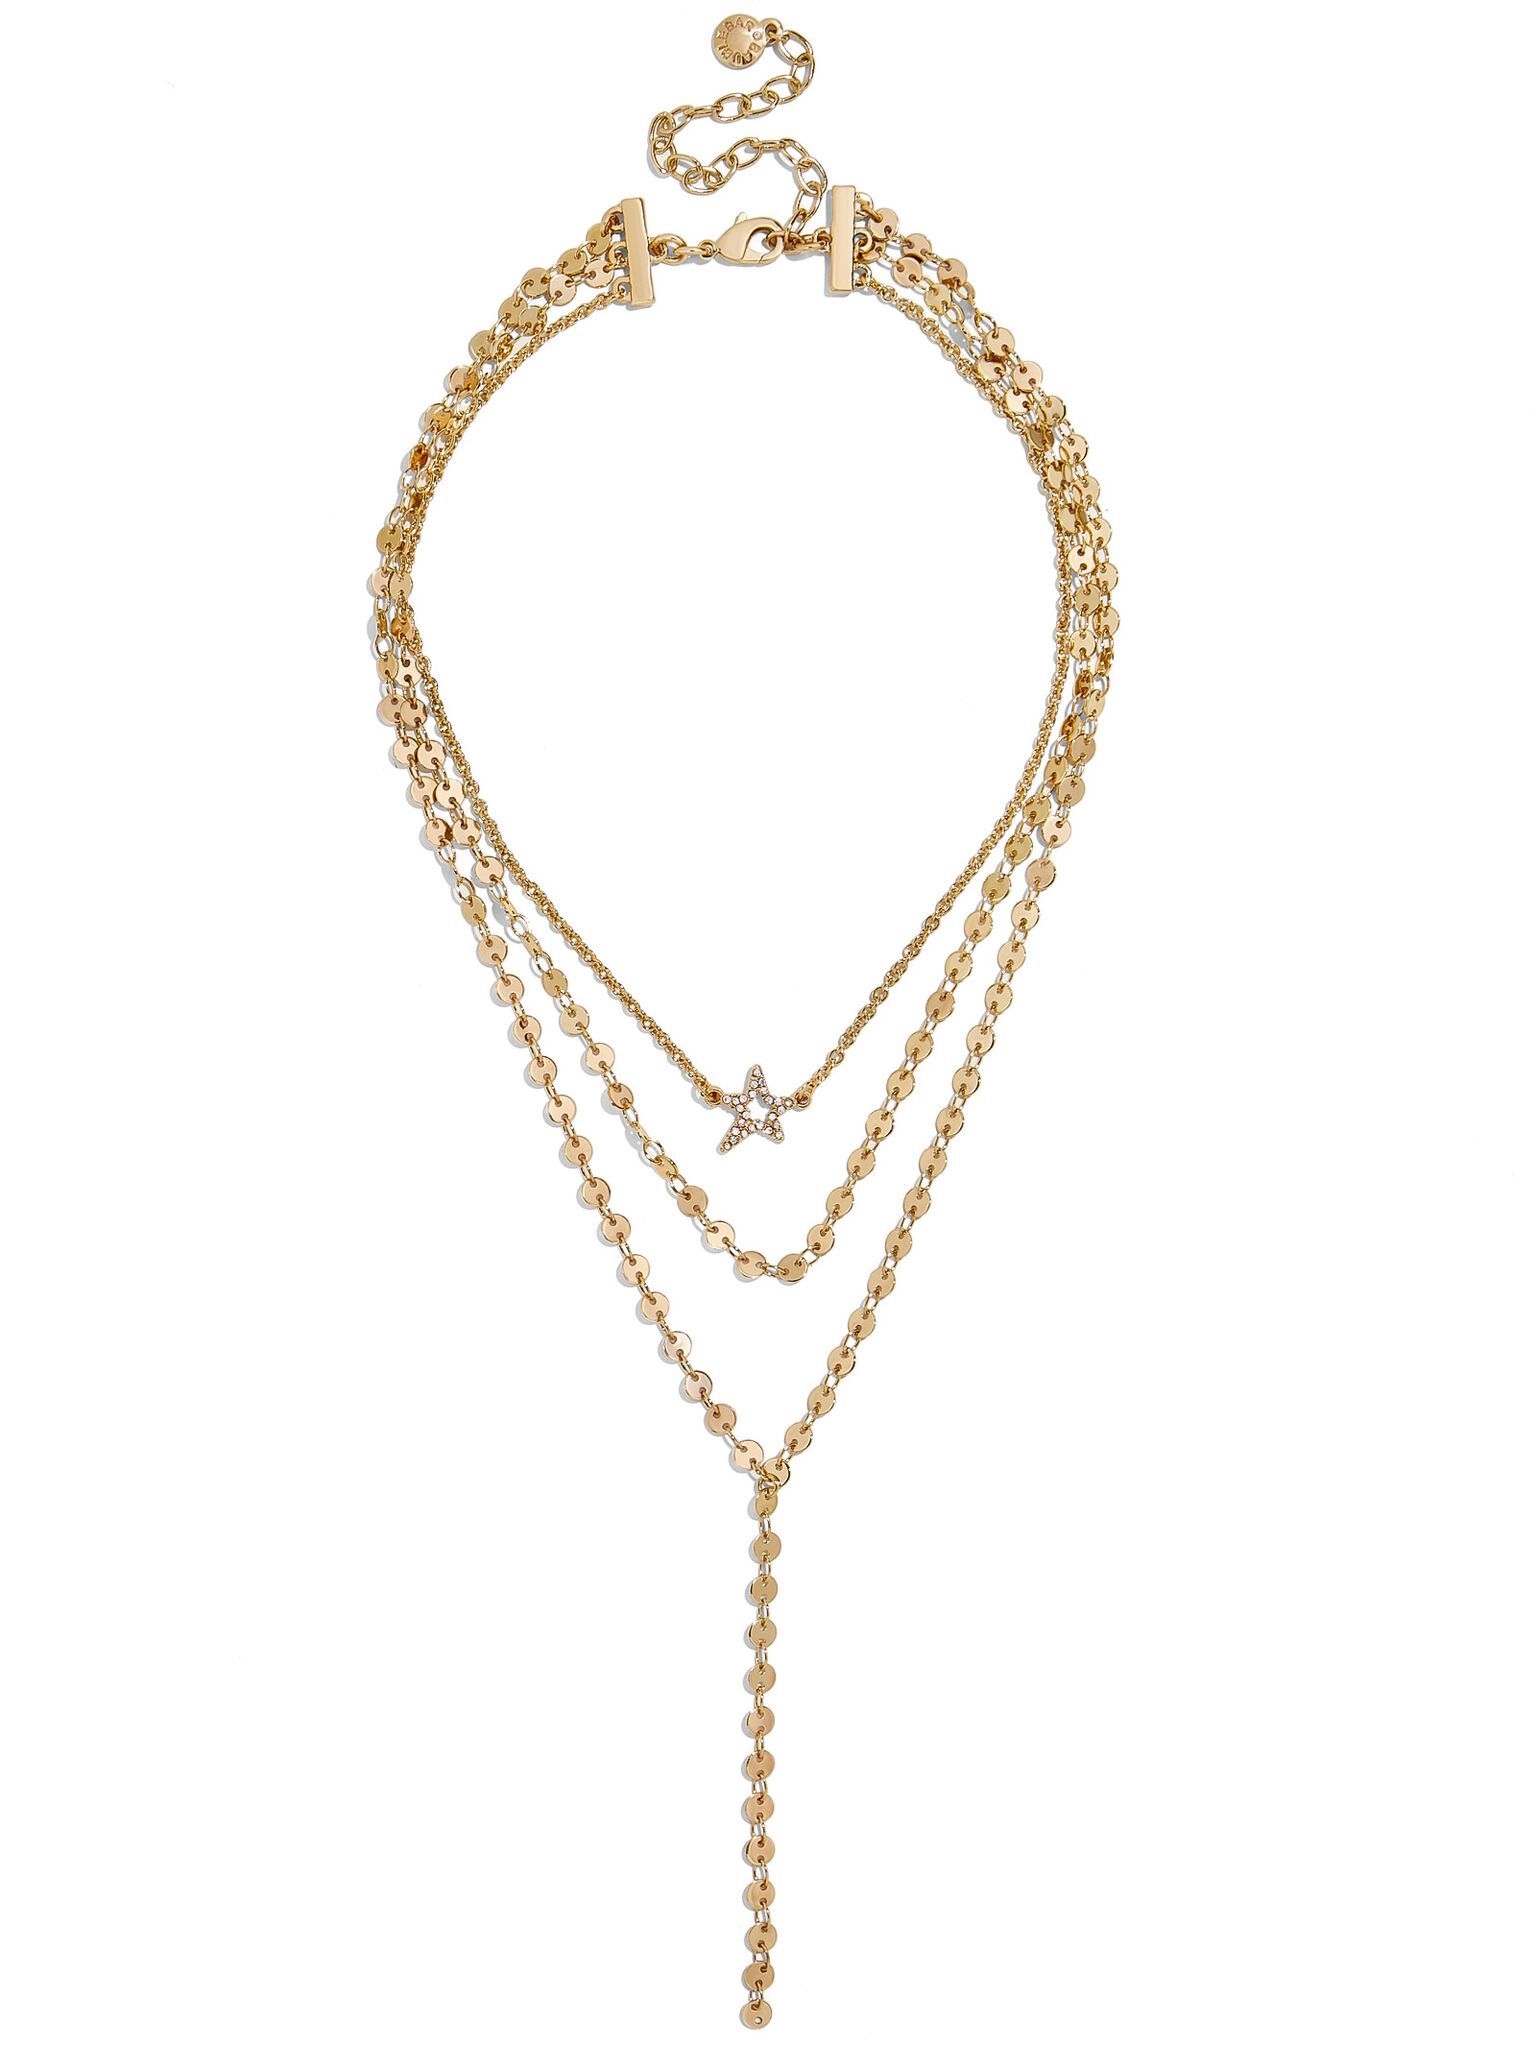 A Chandon-inspired necklace